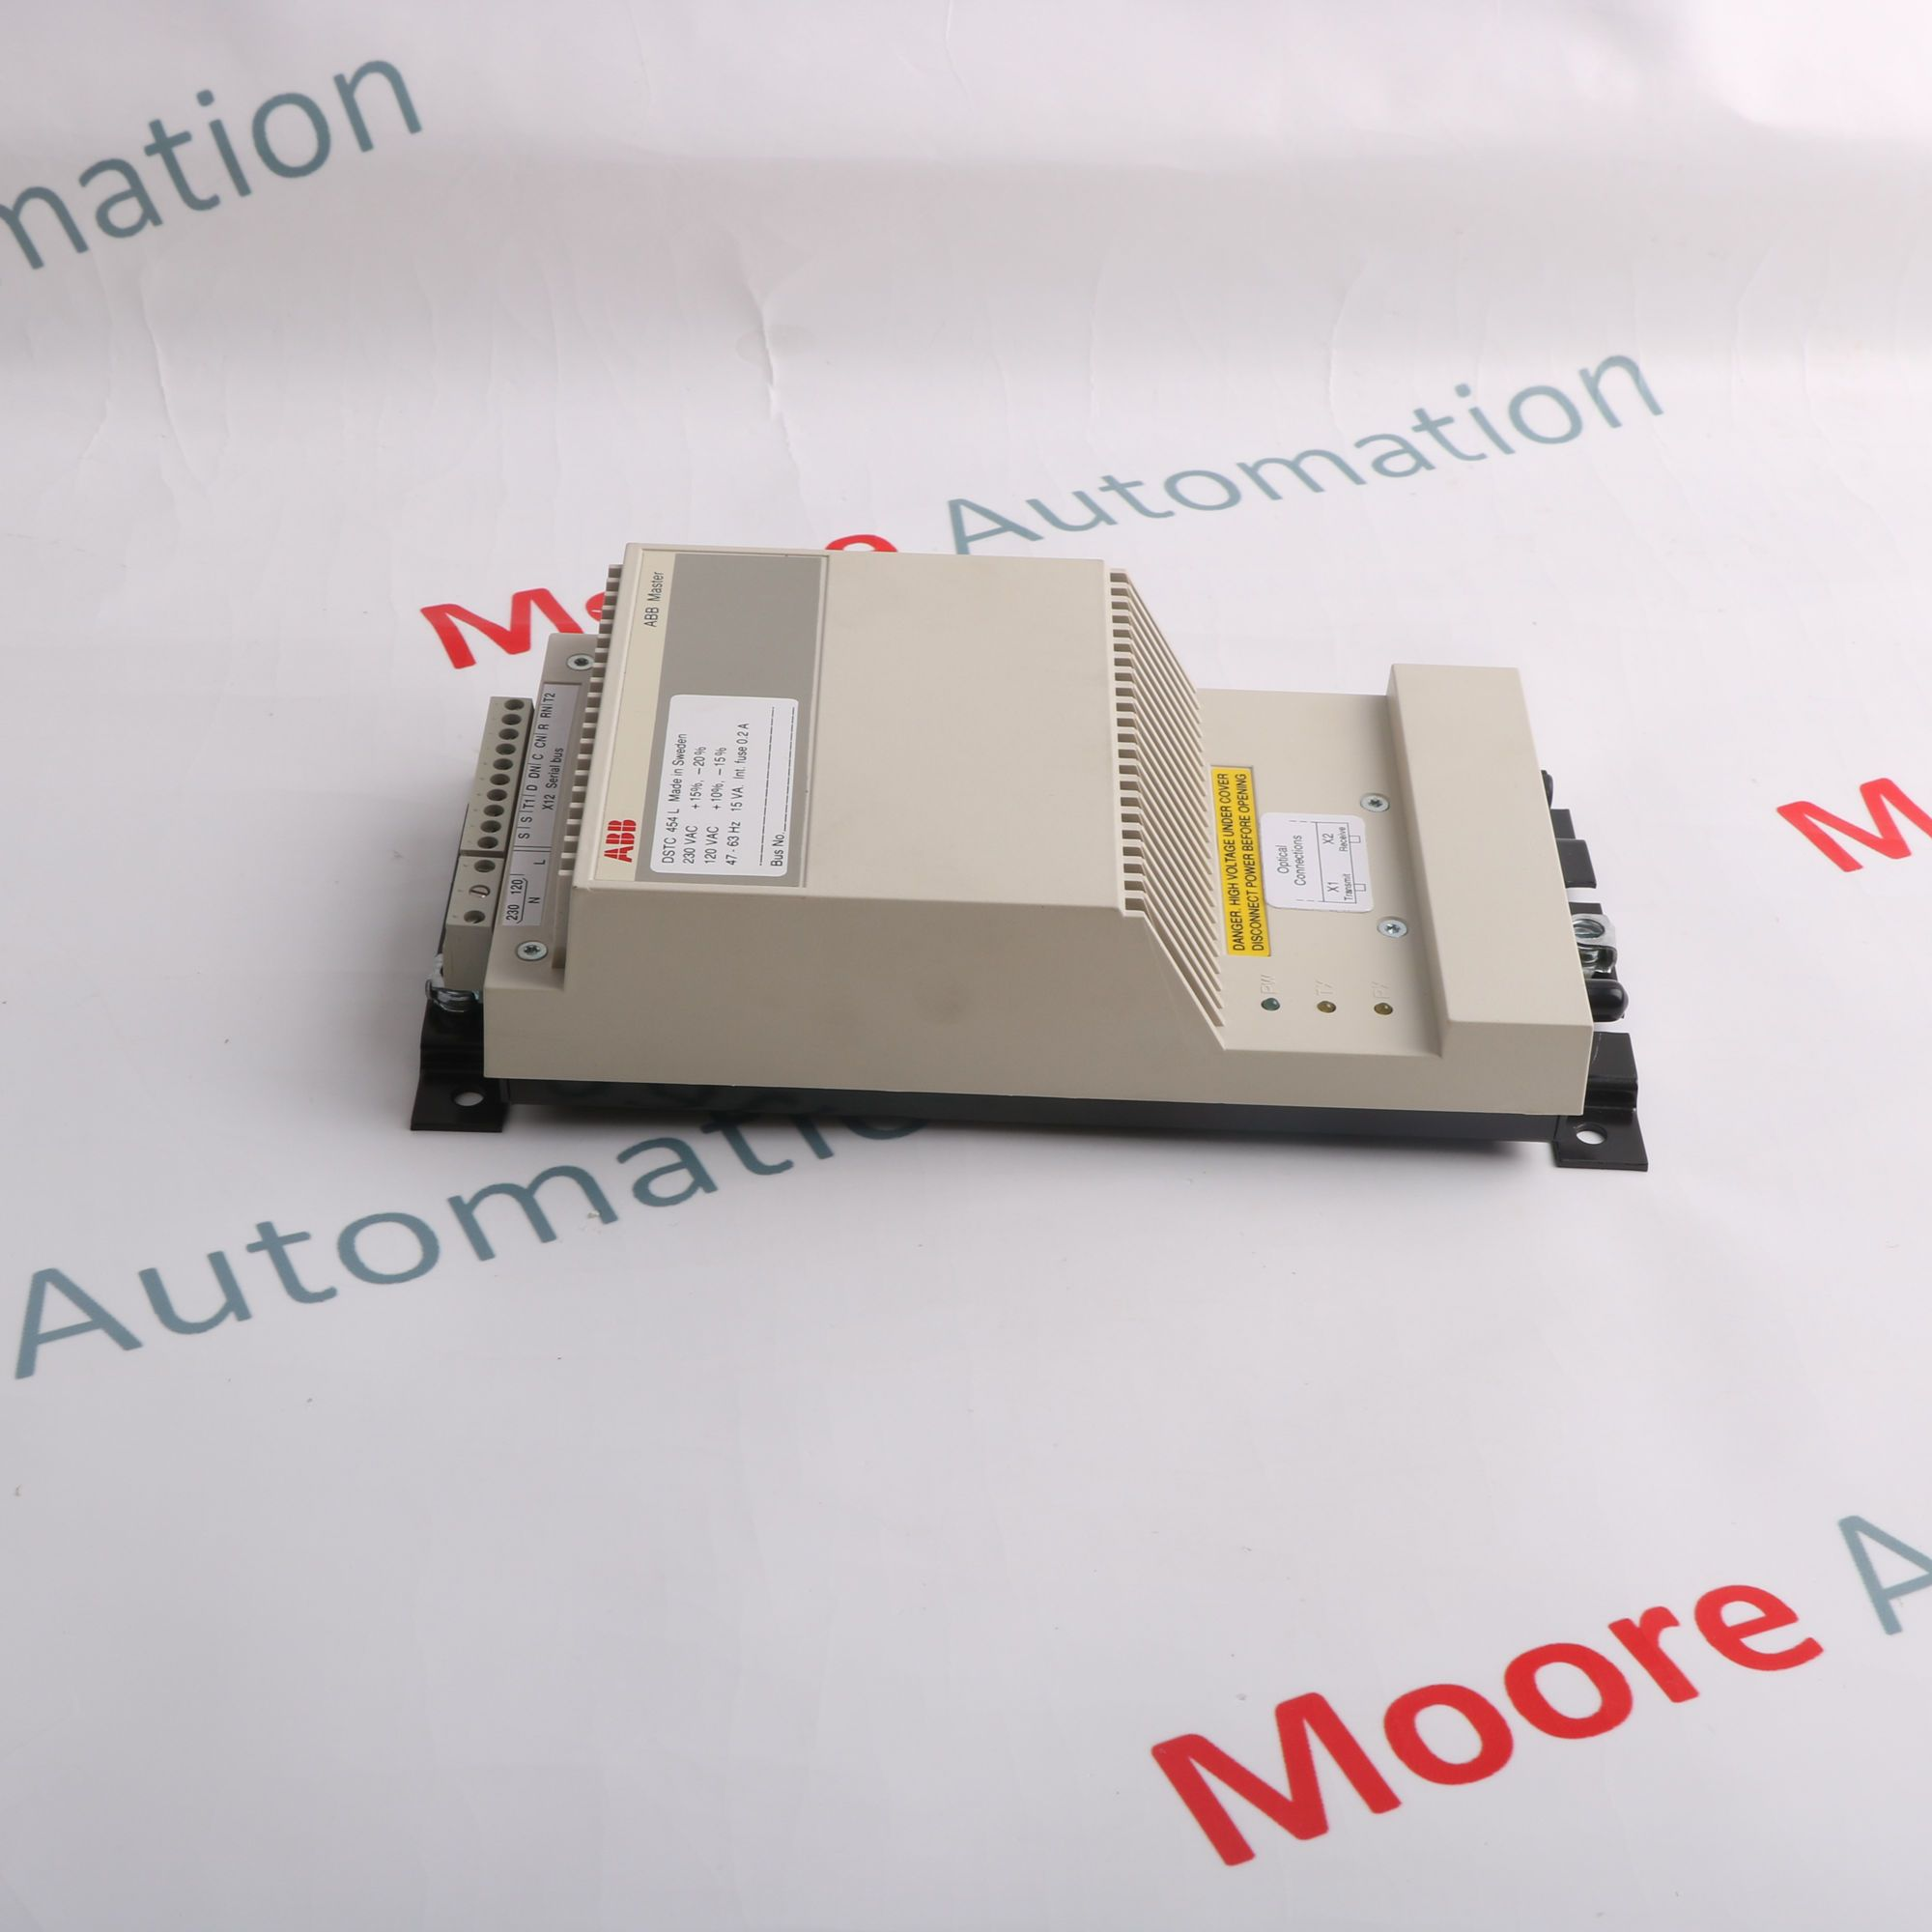 Abb Dsqc1050 3hac064474 001 Shipping Terms This Or That Questions Sales Manager